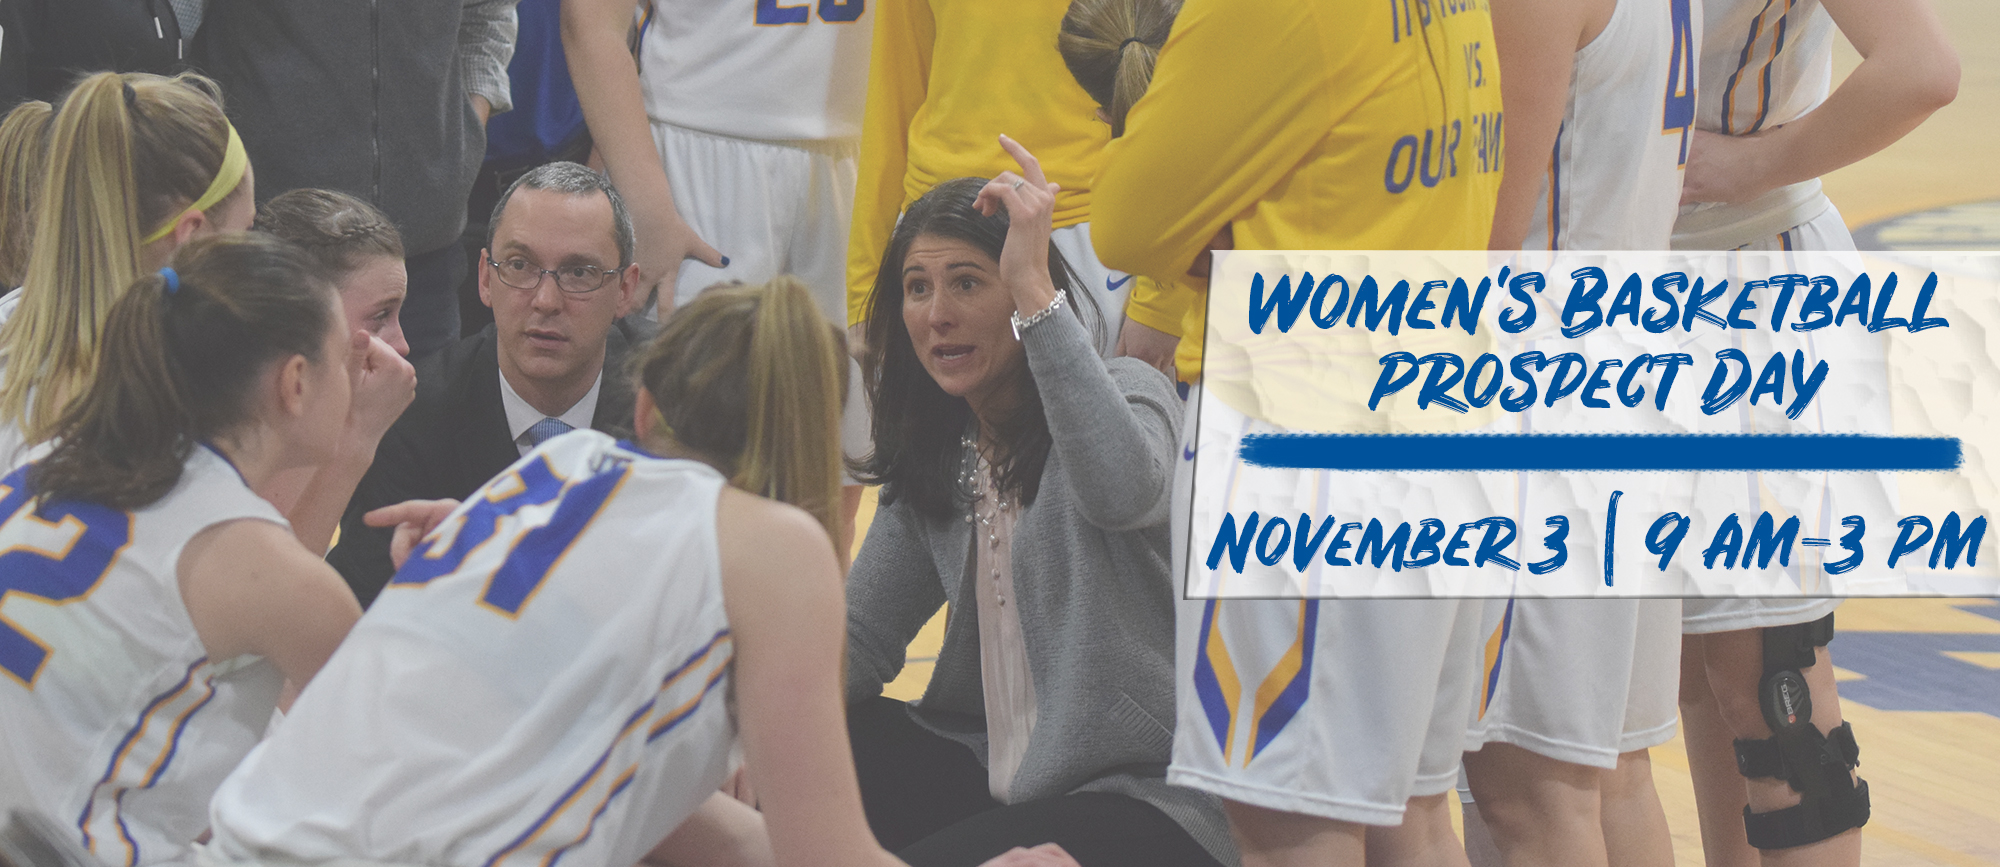 Women's Basketball Prospect Day | Sunday, November 3